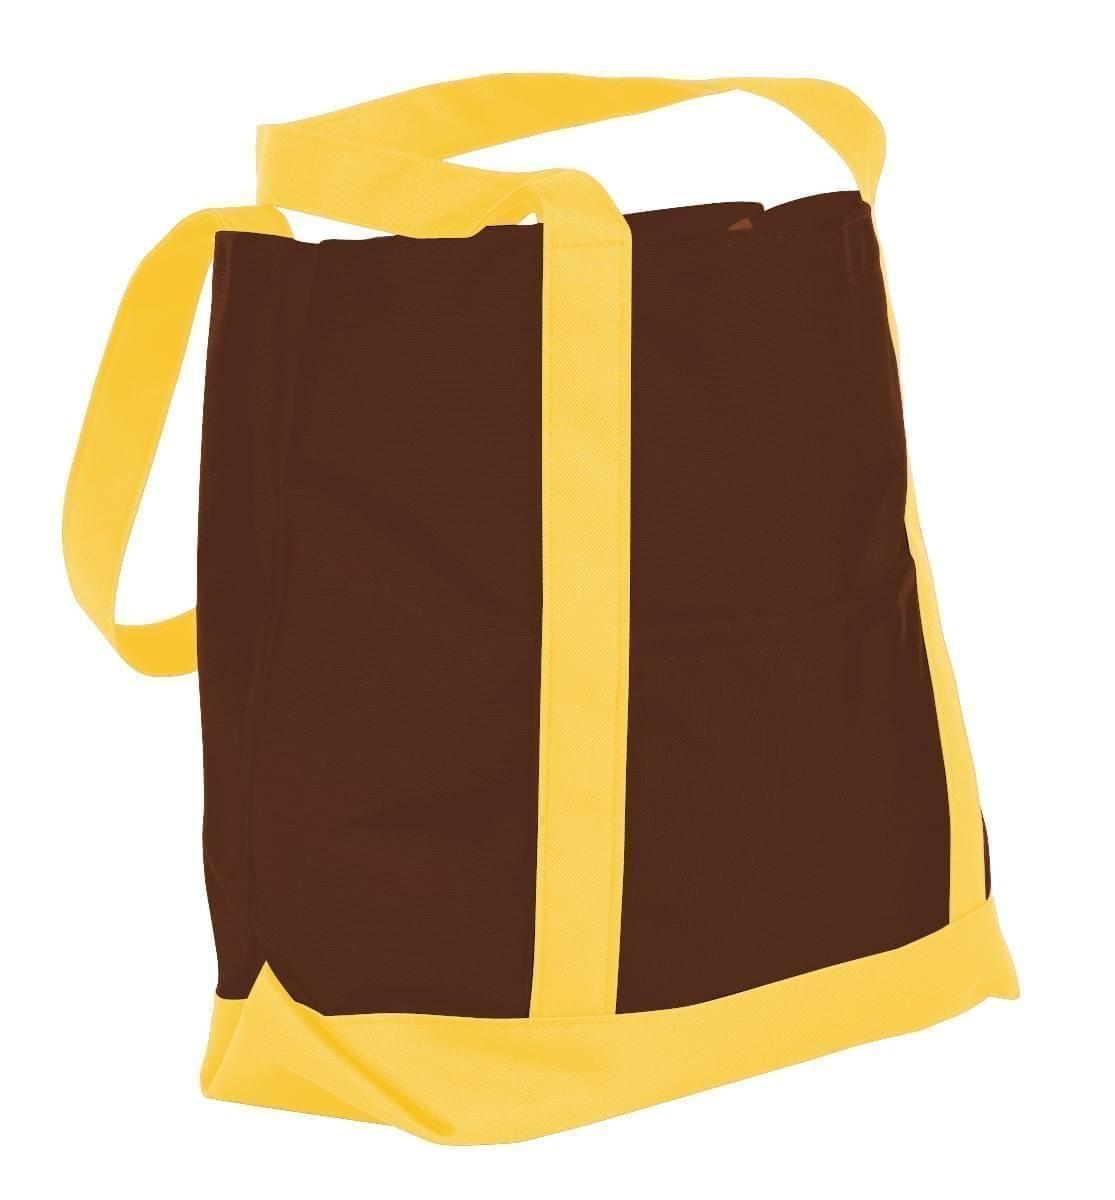 USA Made Canvas Fashion Tote Bags, Brown-Gold, XAACL1UAAQ